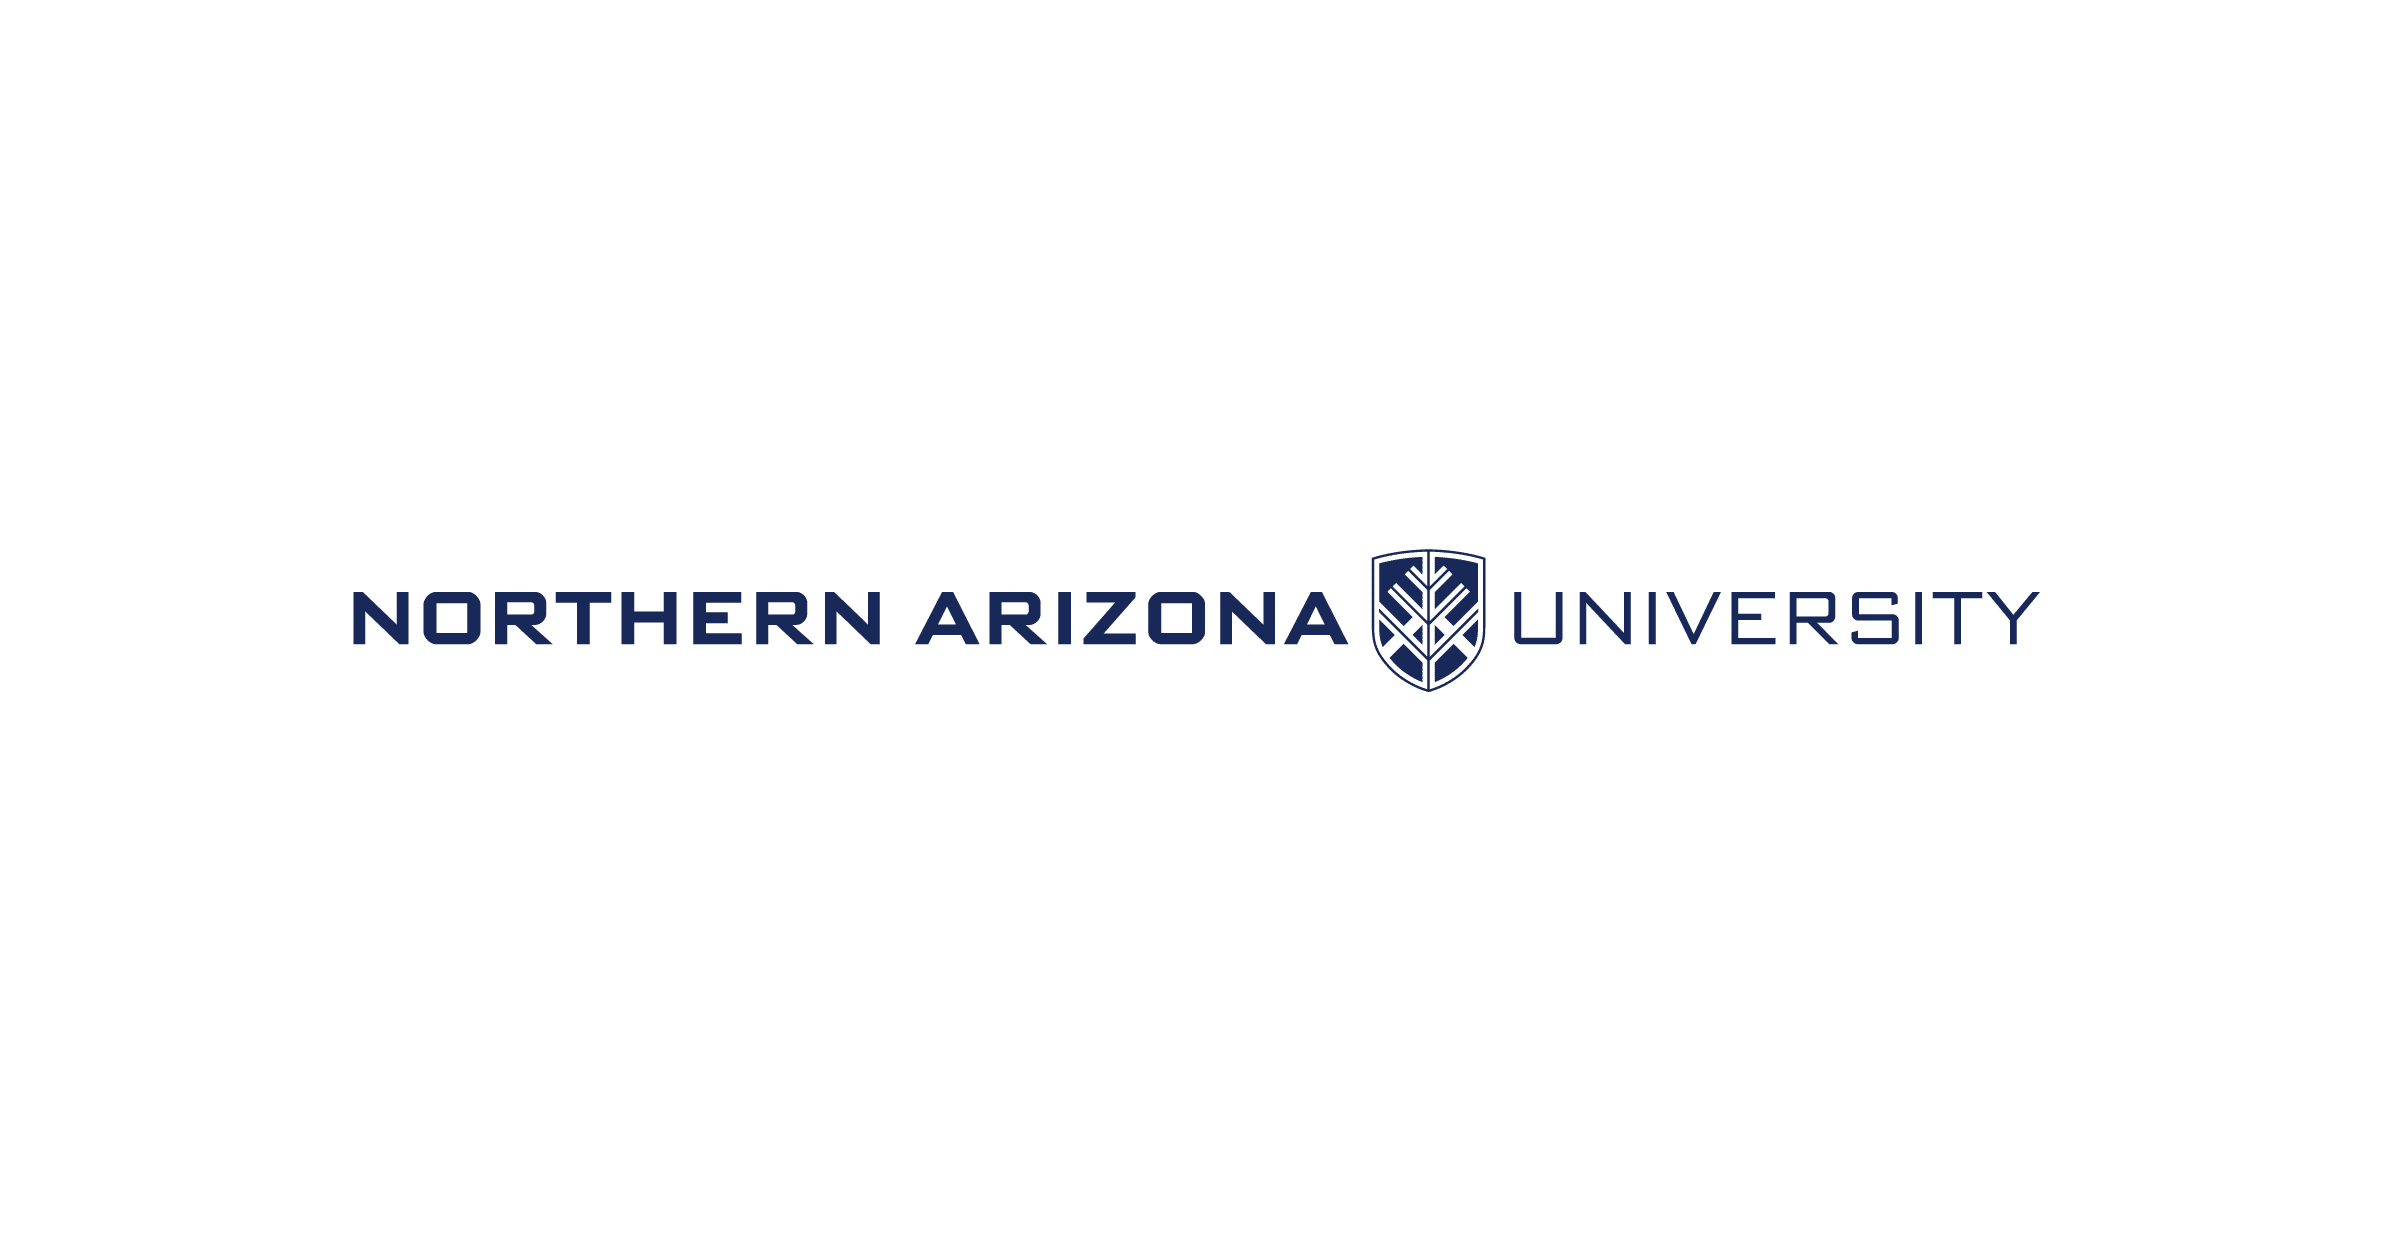 "The Northern Arizona University secondary logo with each word arranged horizontally and the N A U shield appearing between ""Arizona"" and ""University"". The text is blue over a white background."